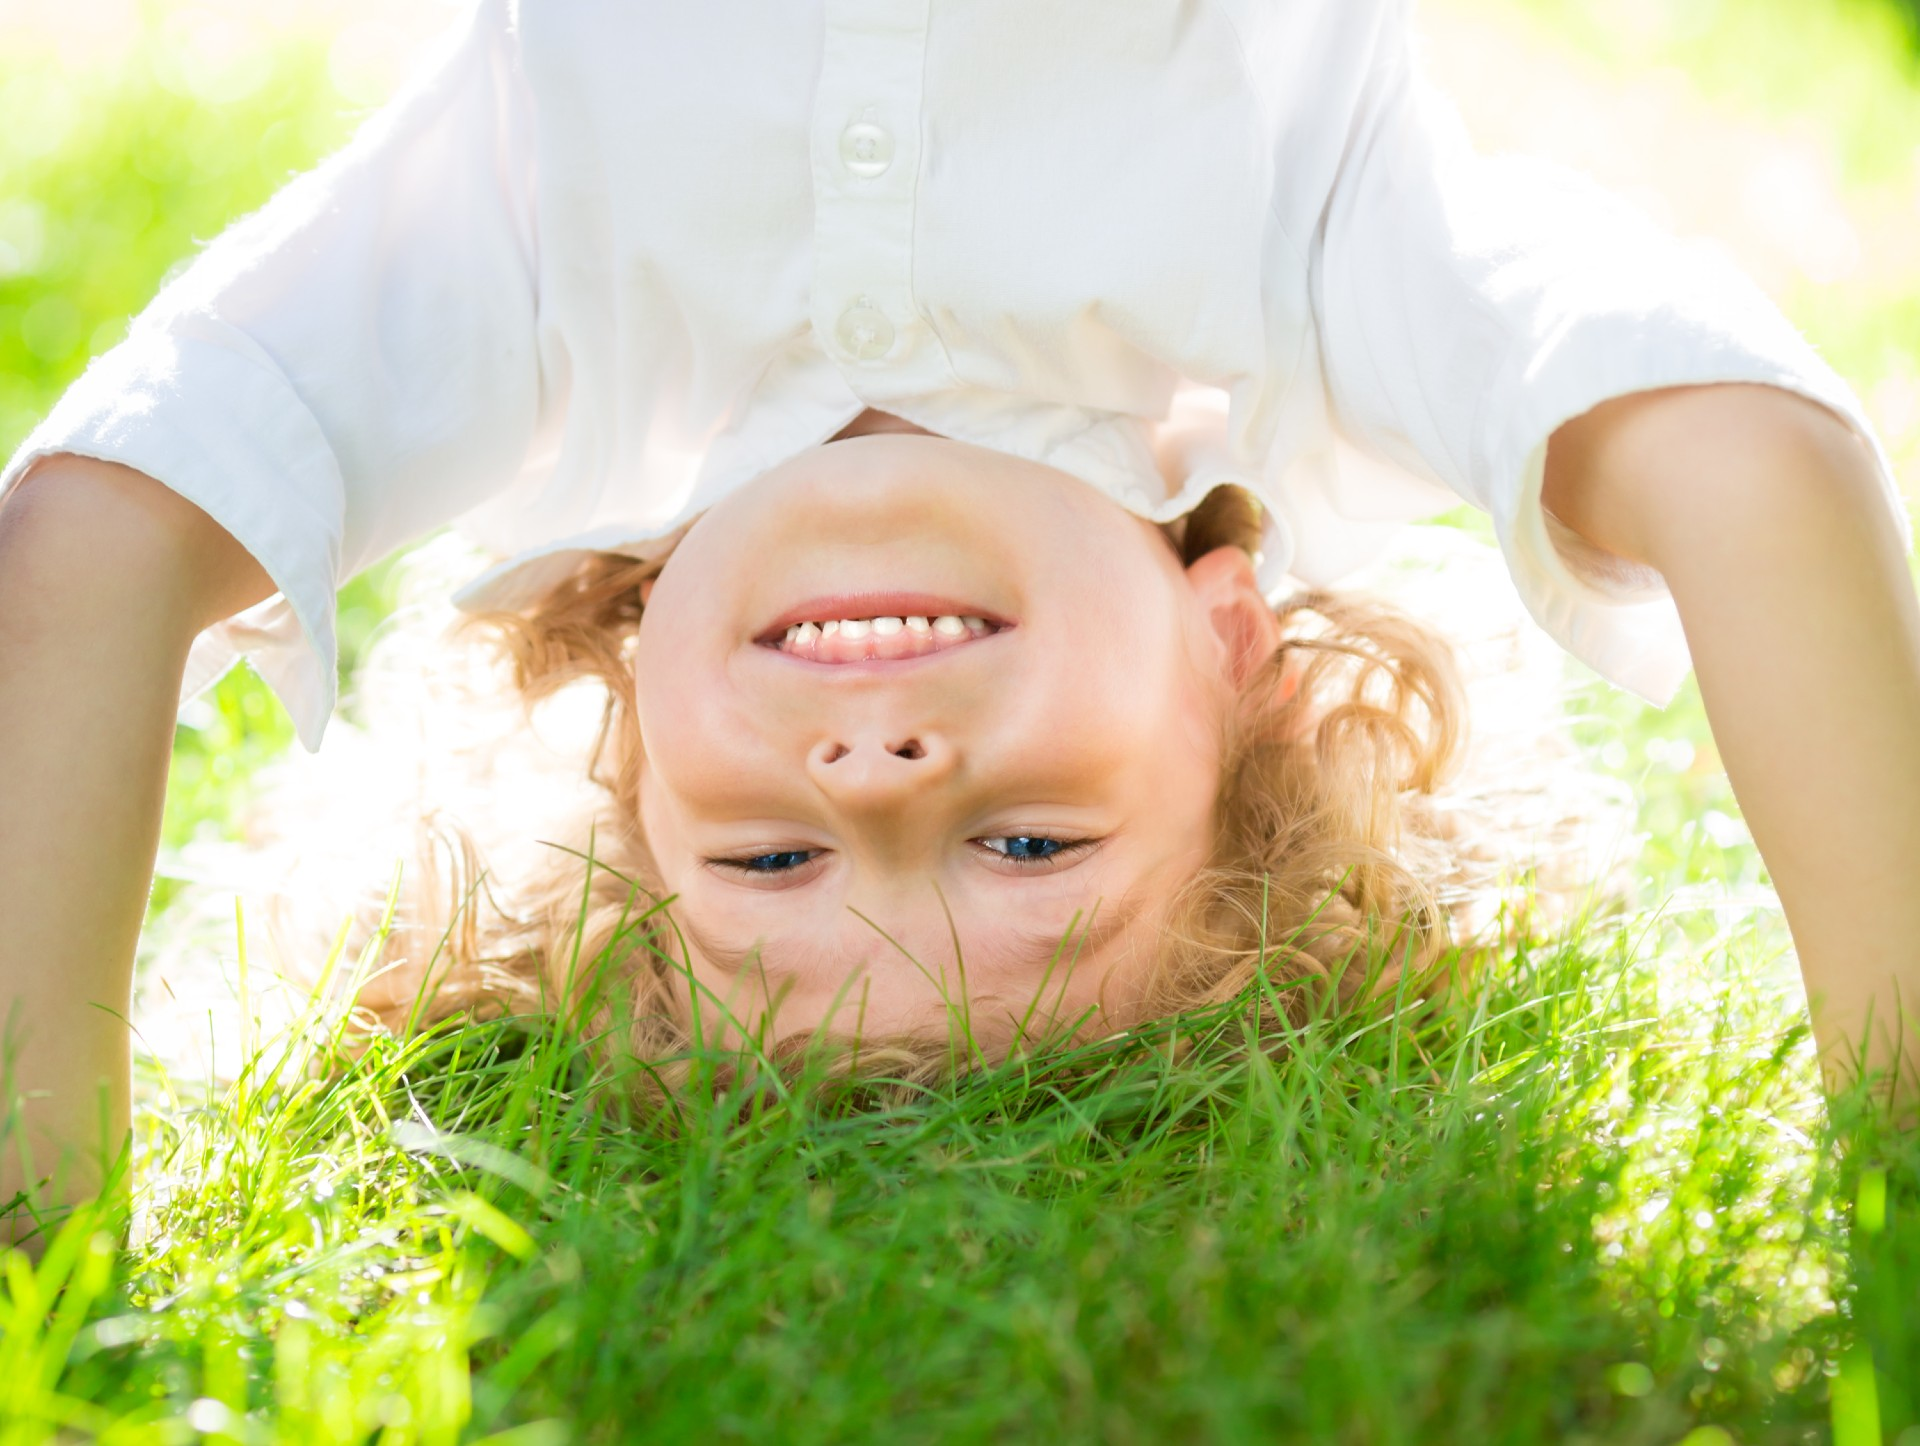 active little boy playing outside on grass